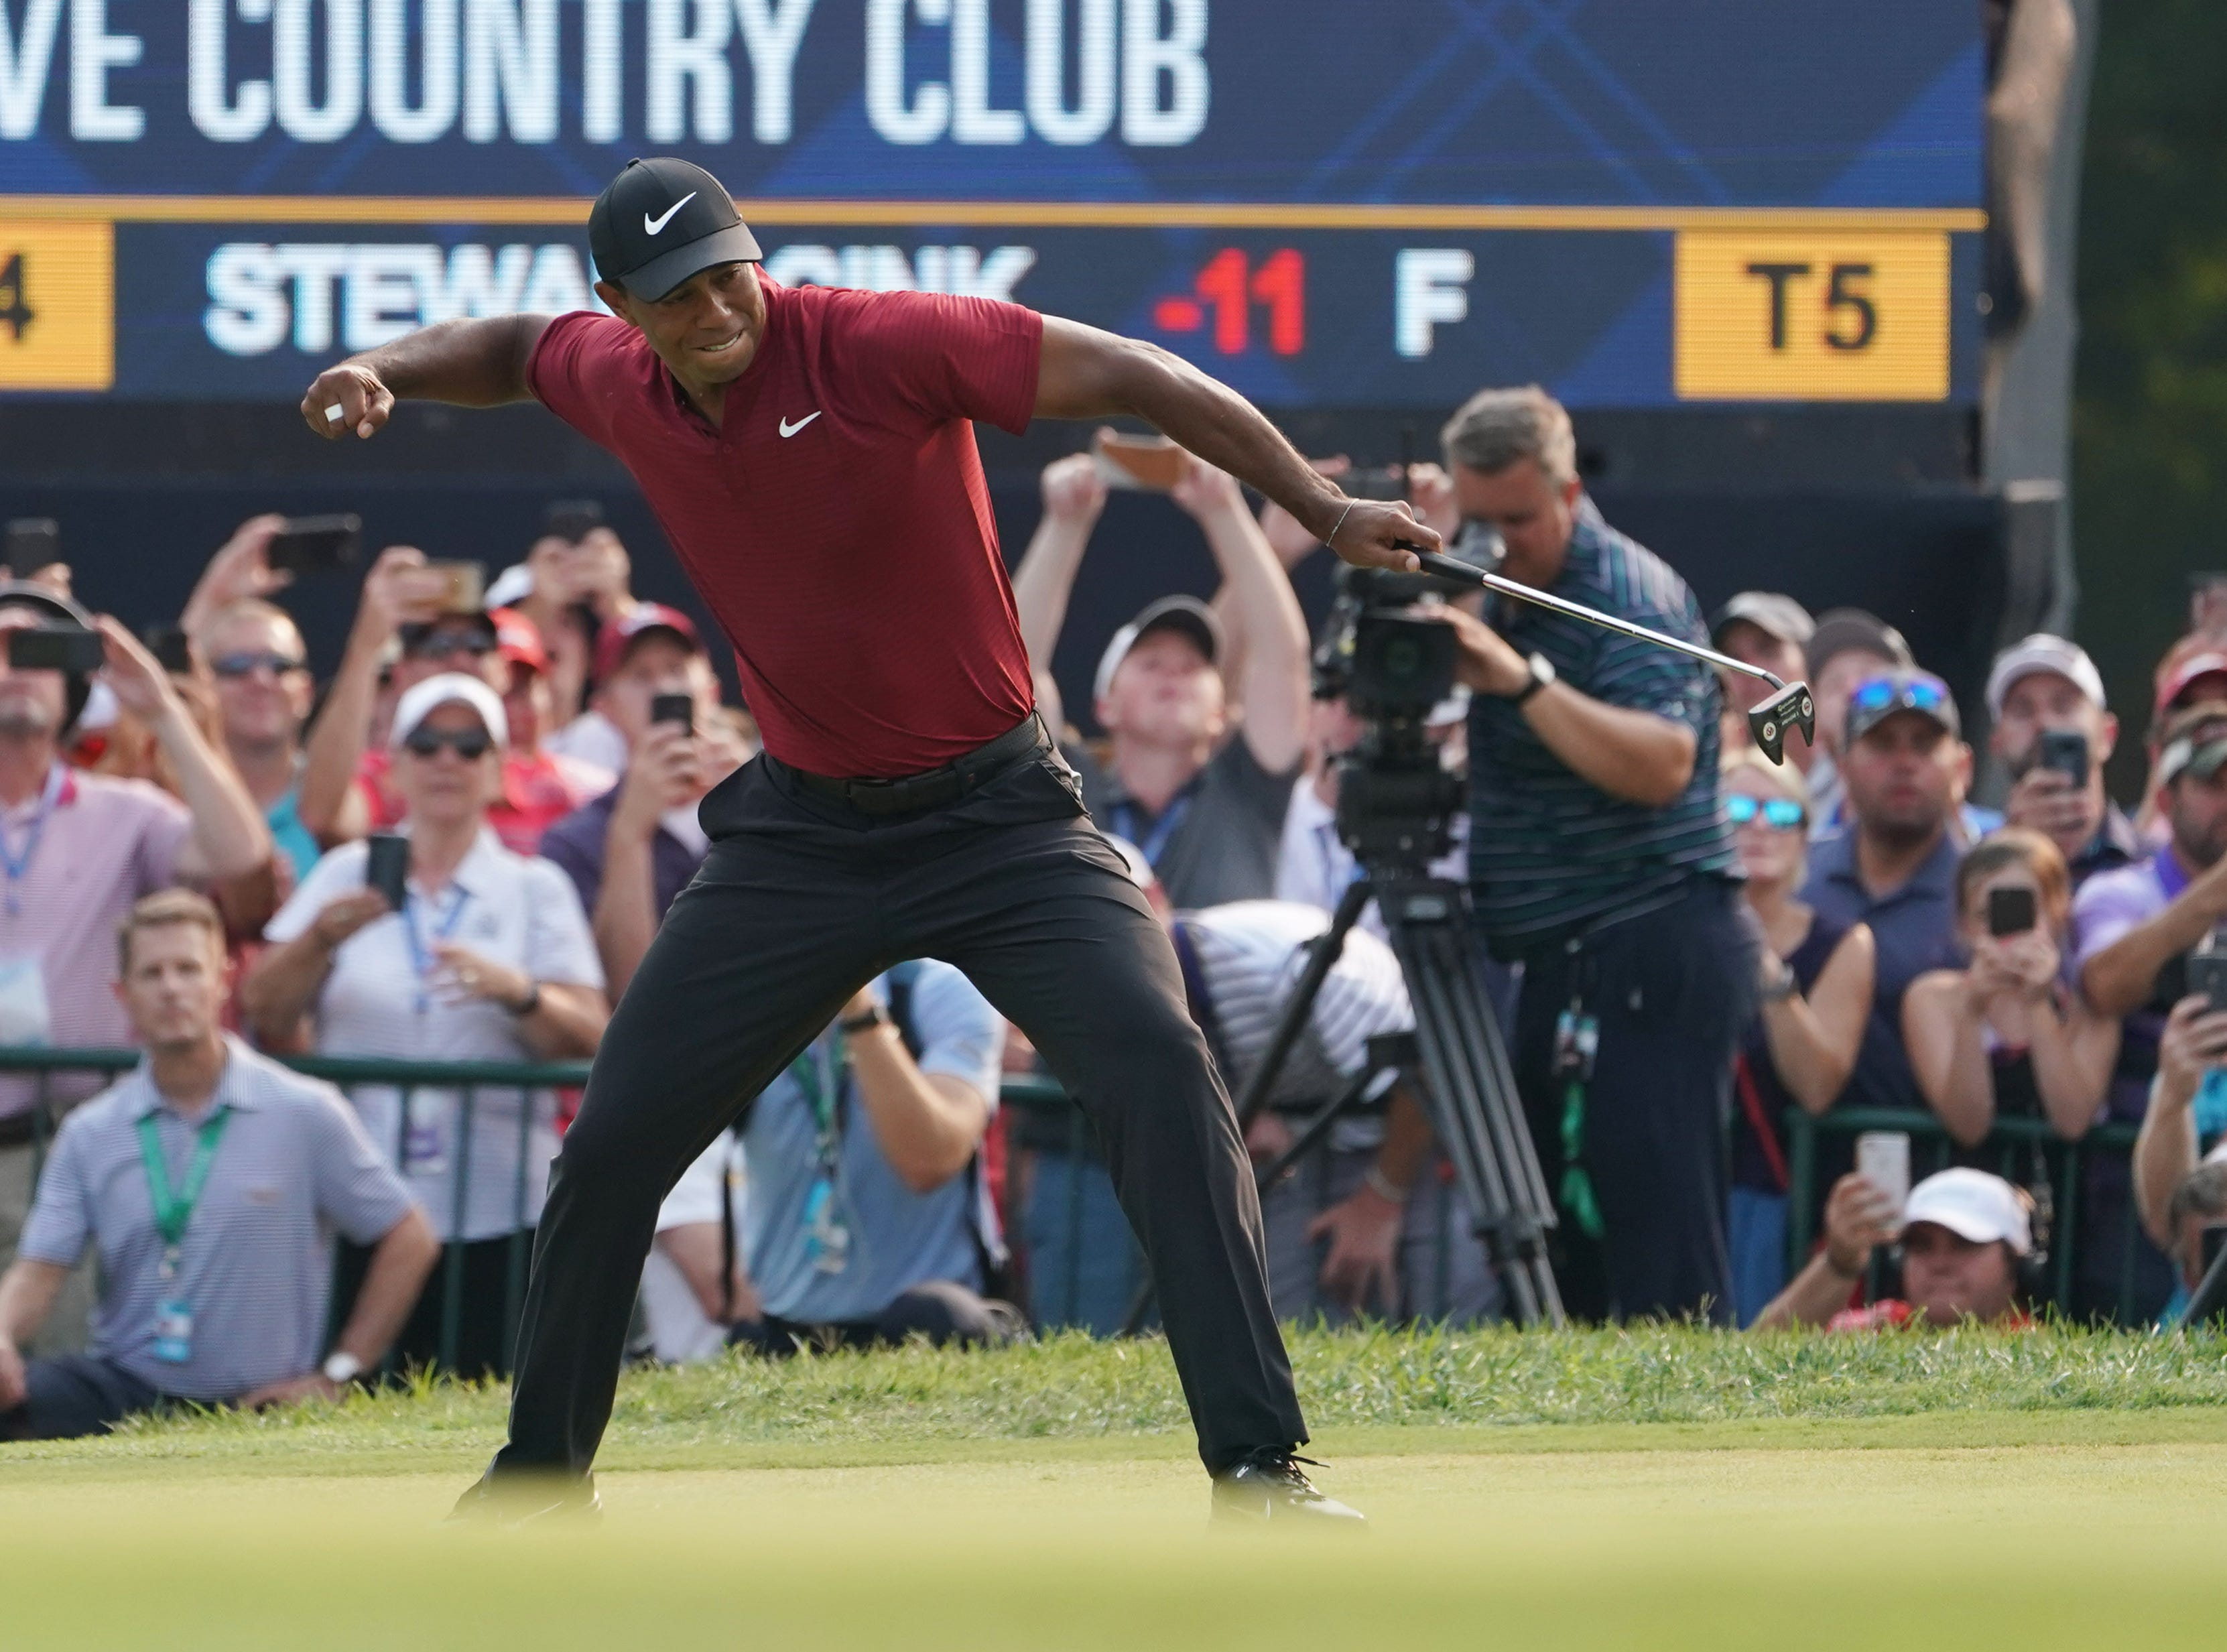 Woods closes with a 64 in the PGA Championship at Bellerive on Aug. 12, 2018 – his lowest round in a major – but Brooks Koepka keeps his cool and wins by two shots. Here Woods celebrates after making a birdie putt on the 18th green.